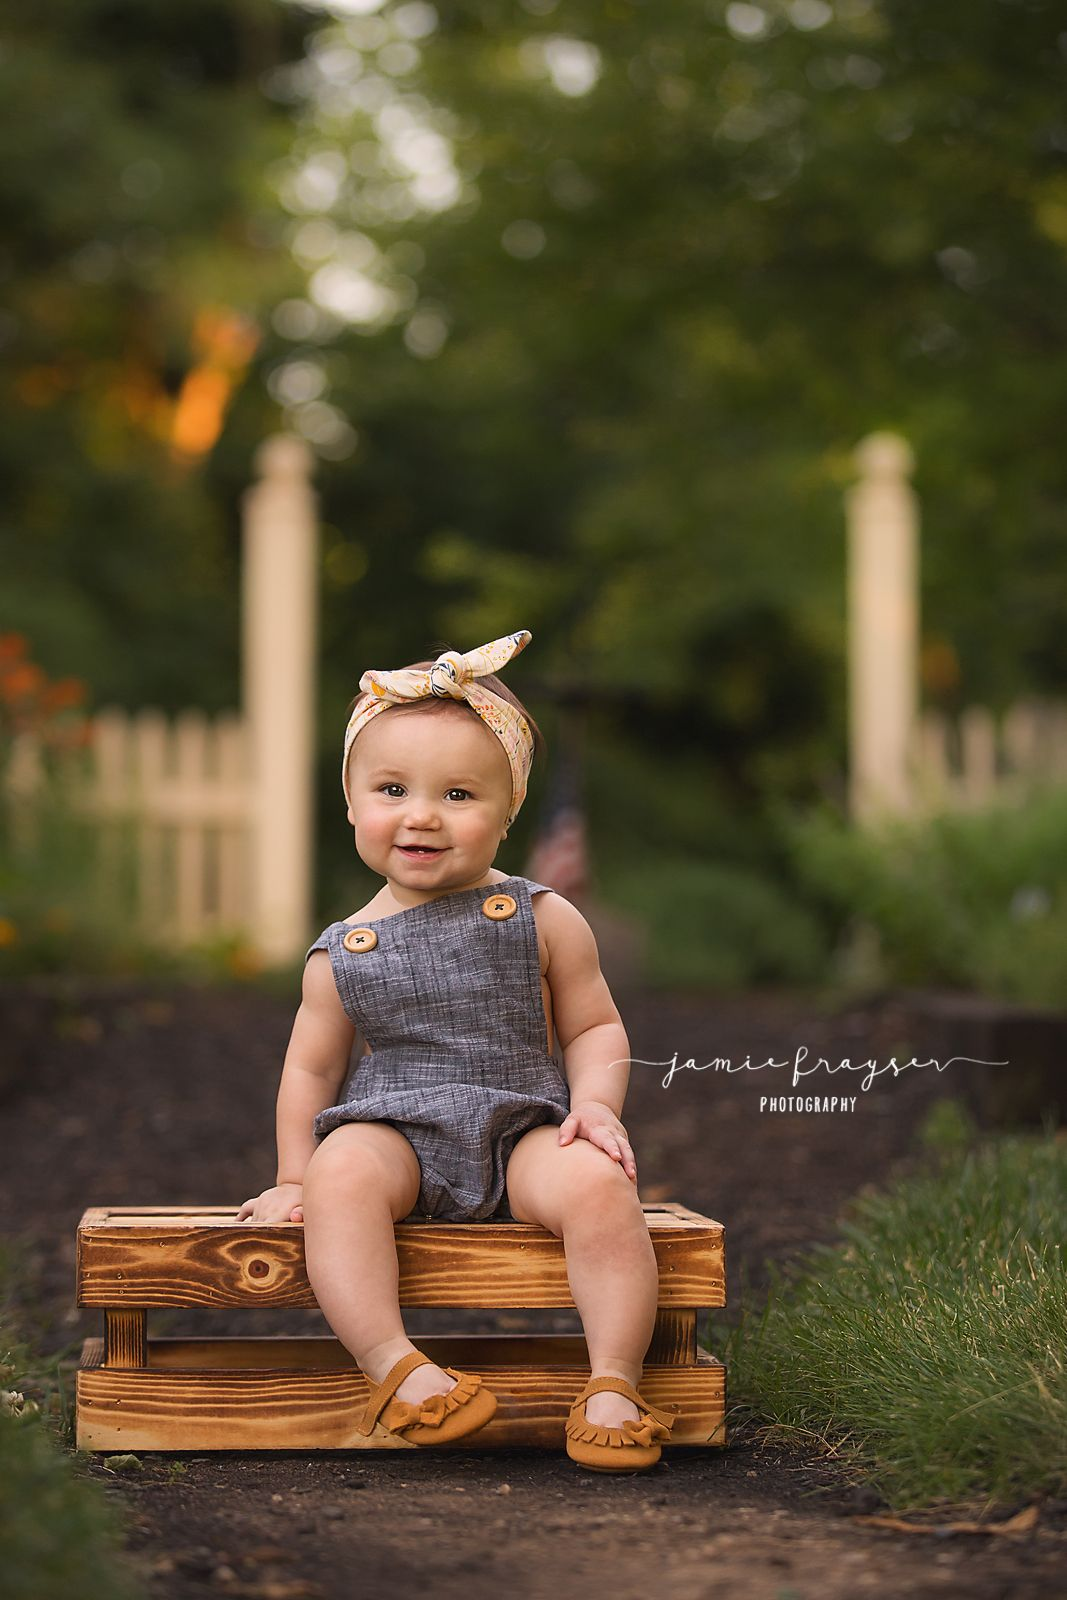 Photoshoot Ideas For Baby Girl At Home : photoshoot, ideas, 7-month-old, Photoshoot, Ideas;, Romper,, Headwrap, Toddler, Photoshoot,, Girl,, Photography